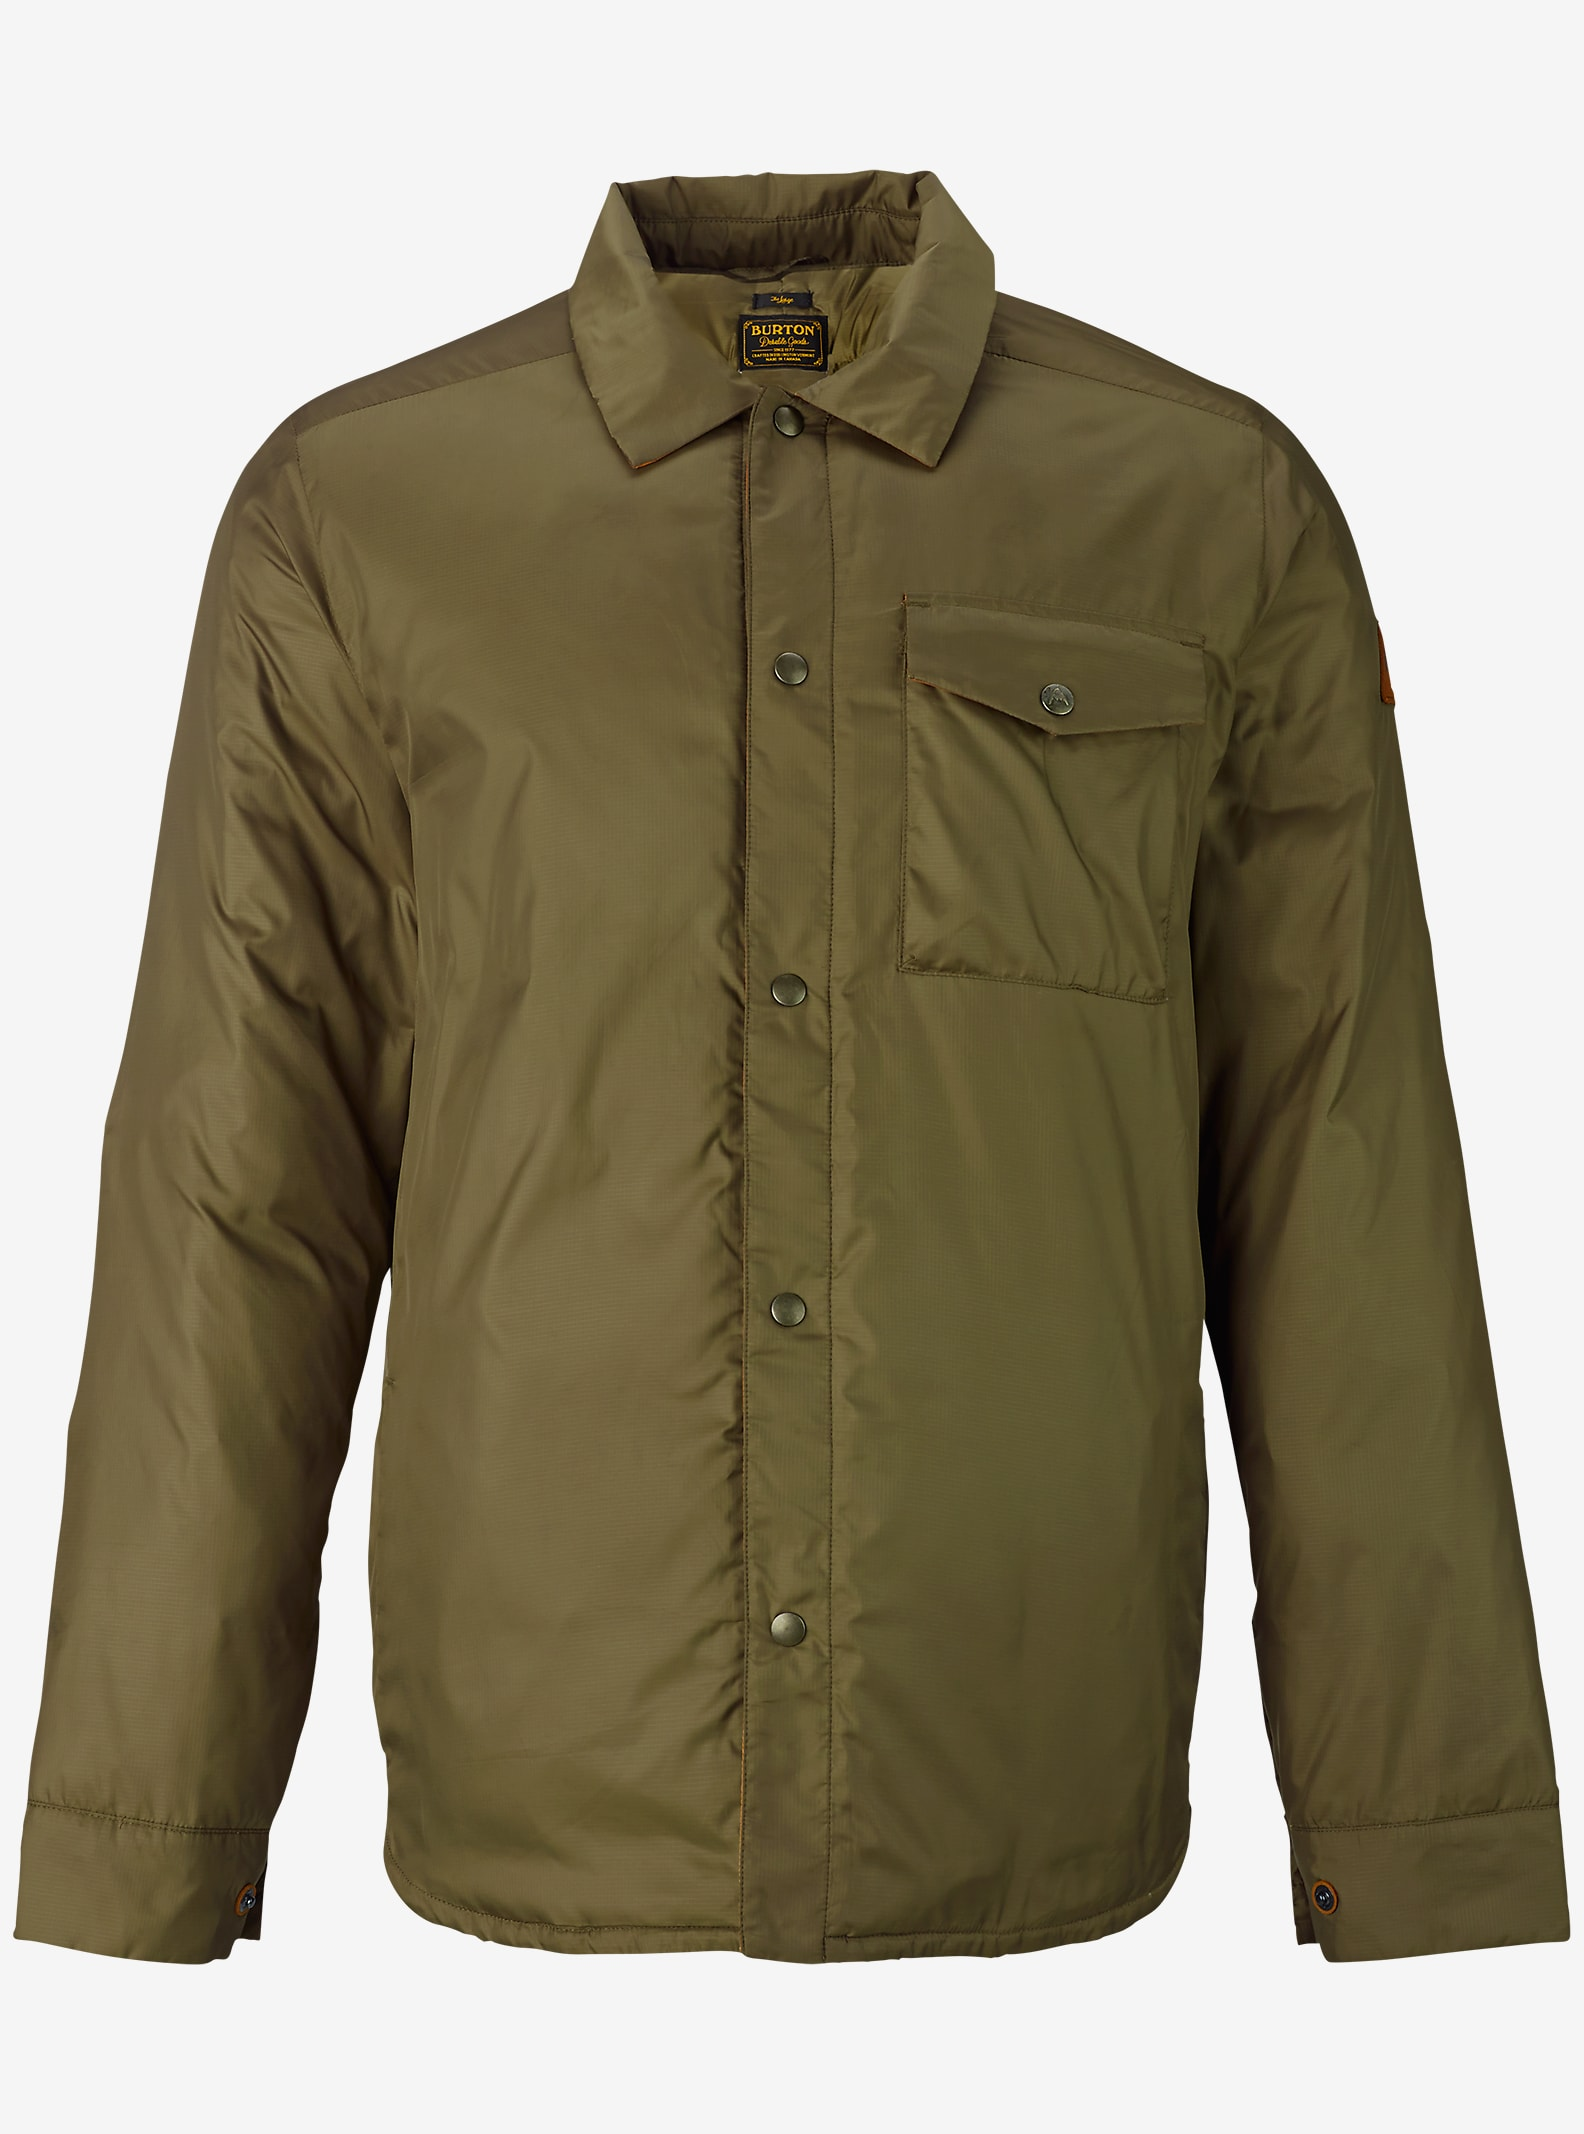 Burton Wayland Down Shirt shown in Keef